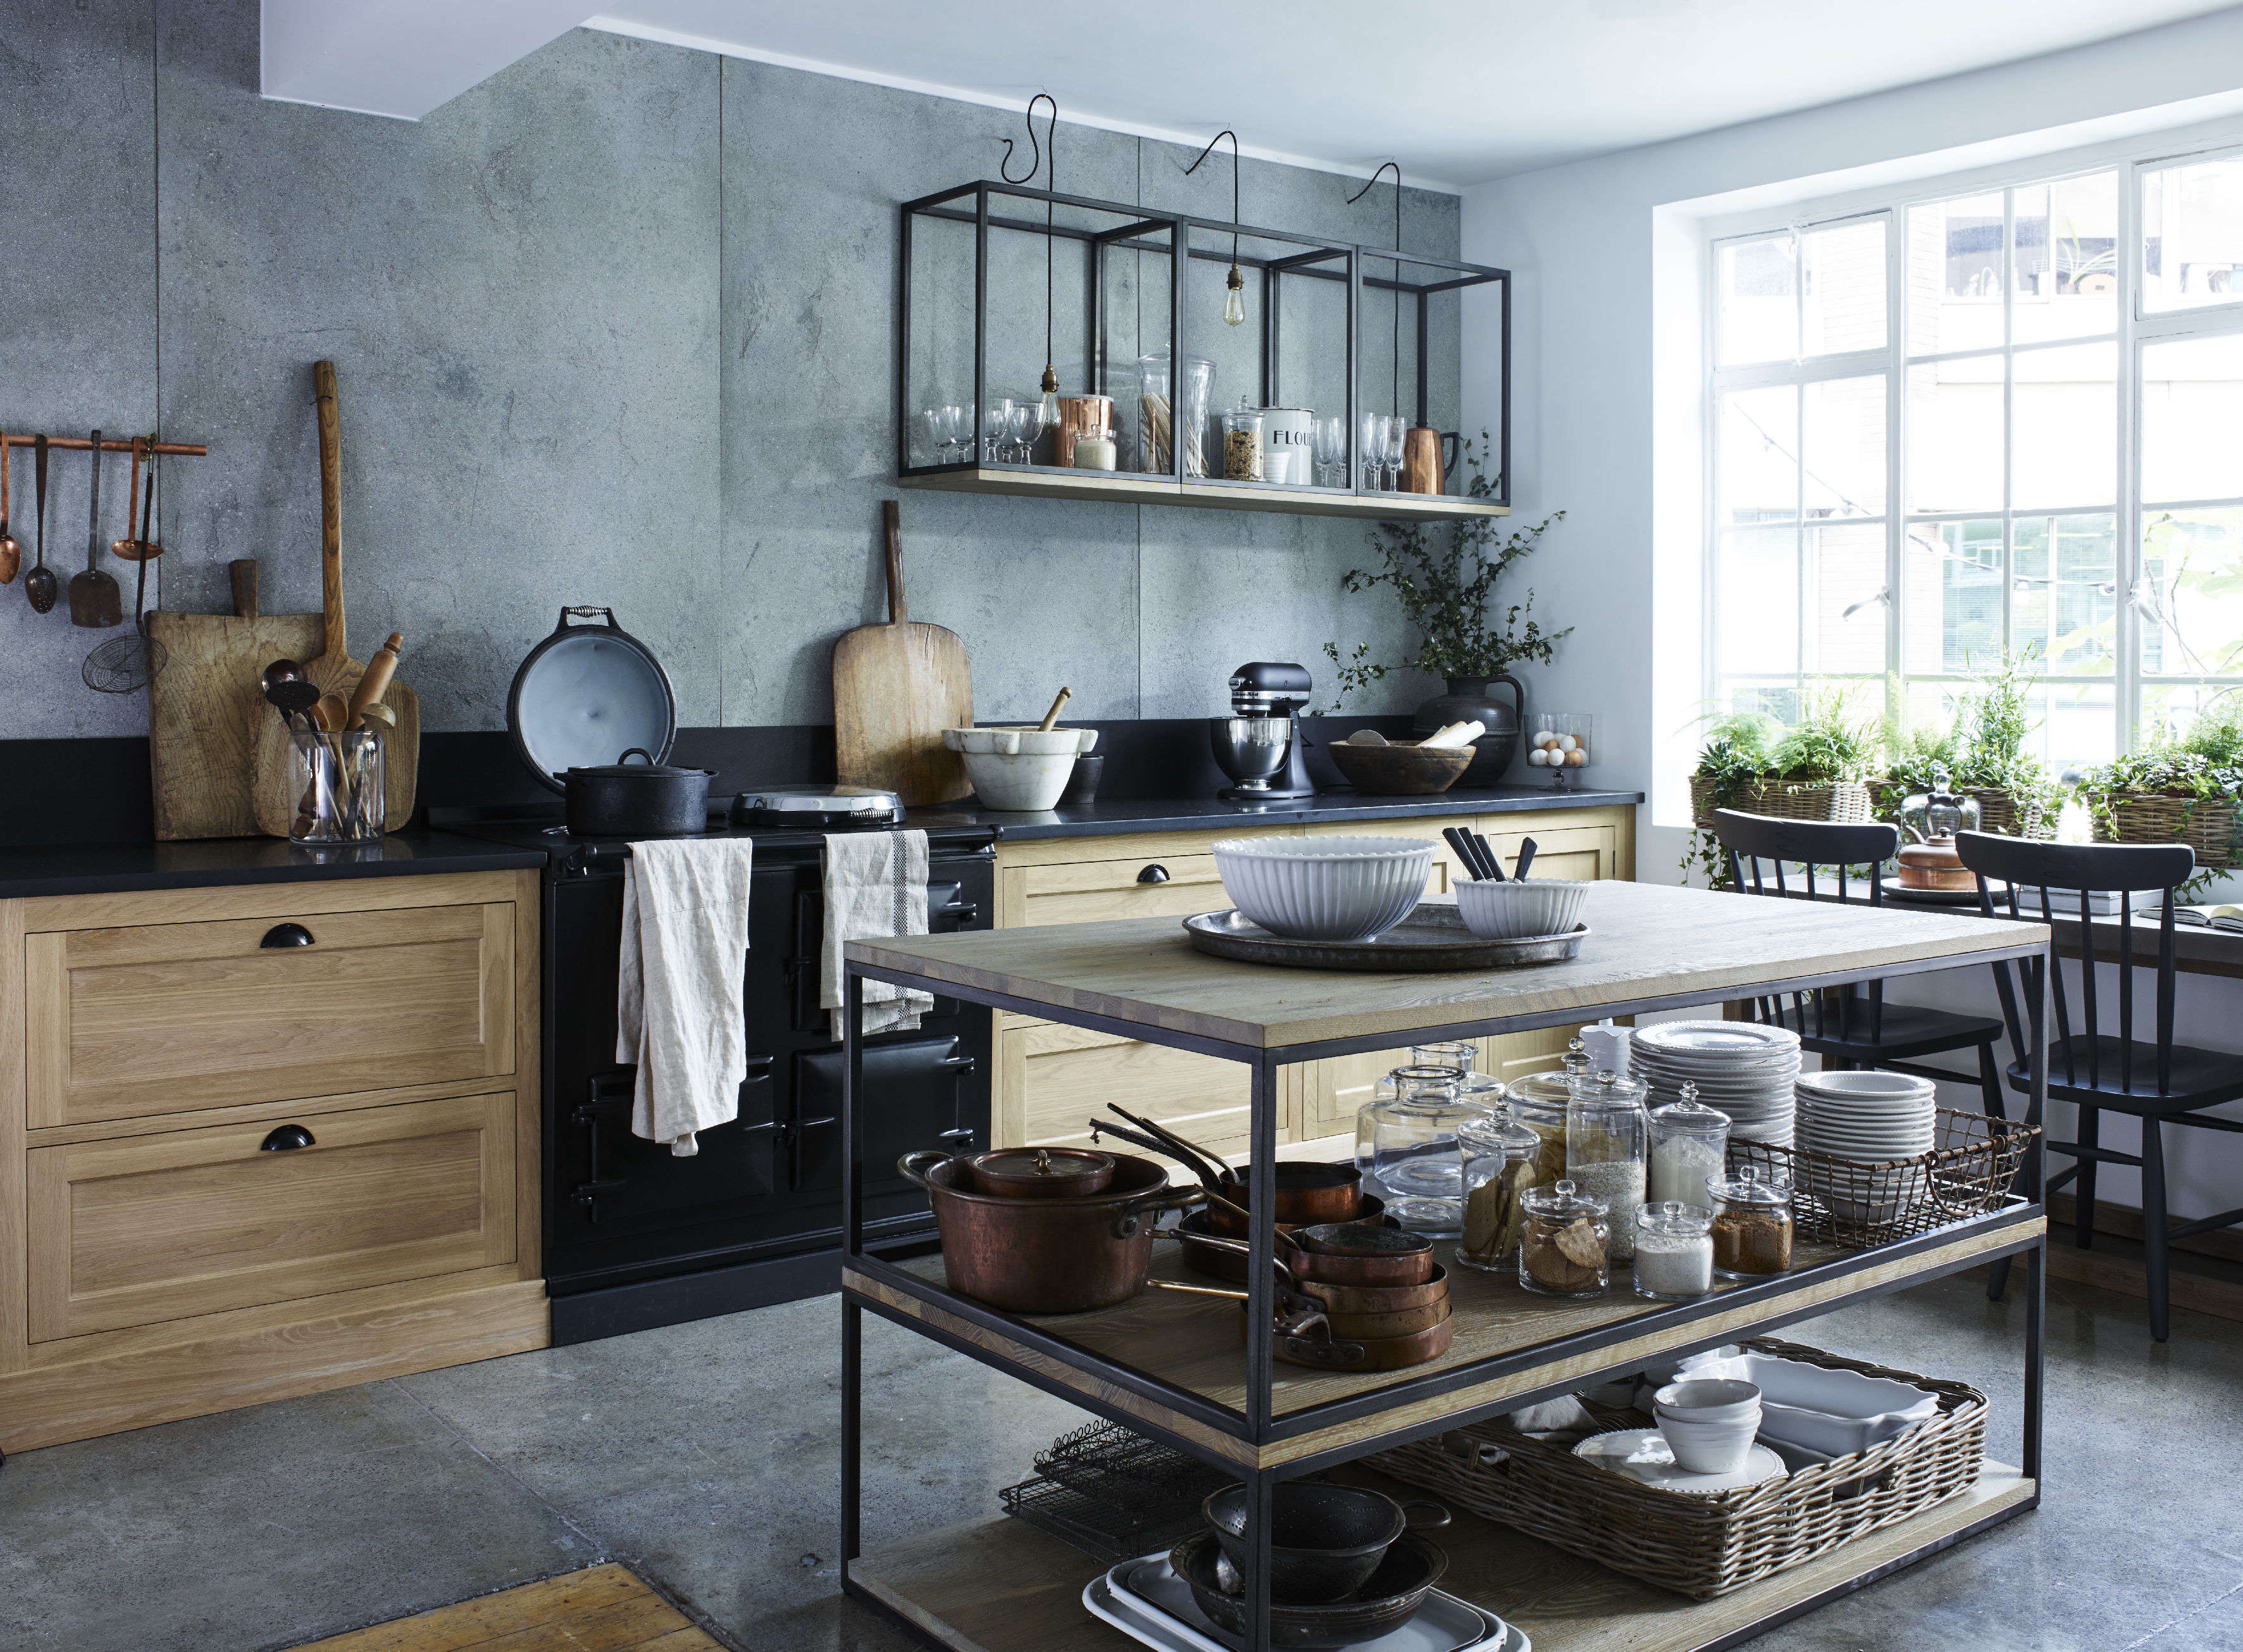 In the center of this kitchen, the stylists at the showroom have stacked two industrial-look coffee tables to create an open kitchen island and worktop. (Evidently, they've fashioned an extra surface at the base of the structure to create a third wooden shelf.)